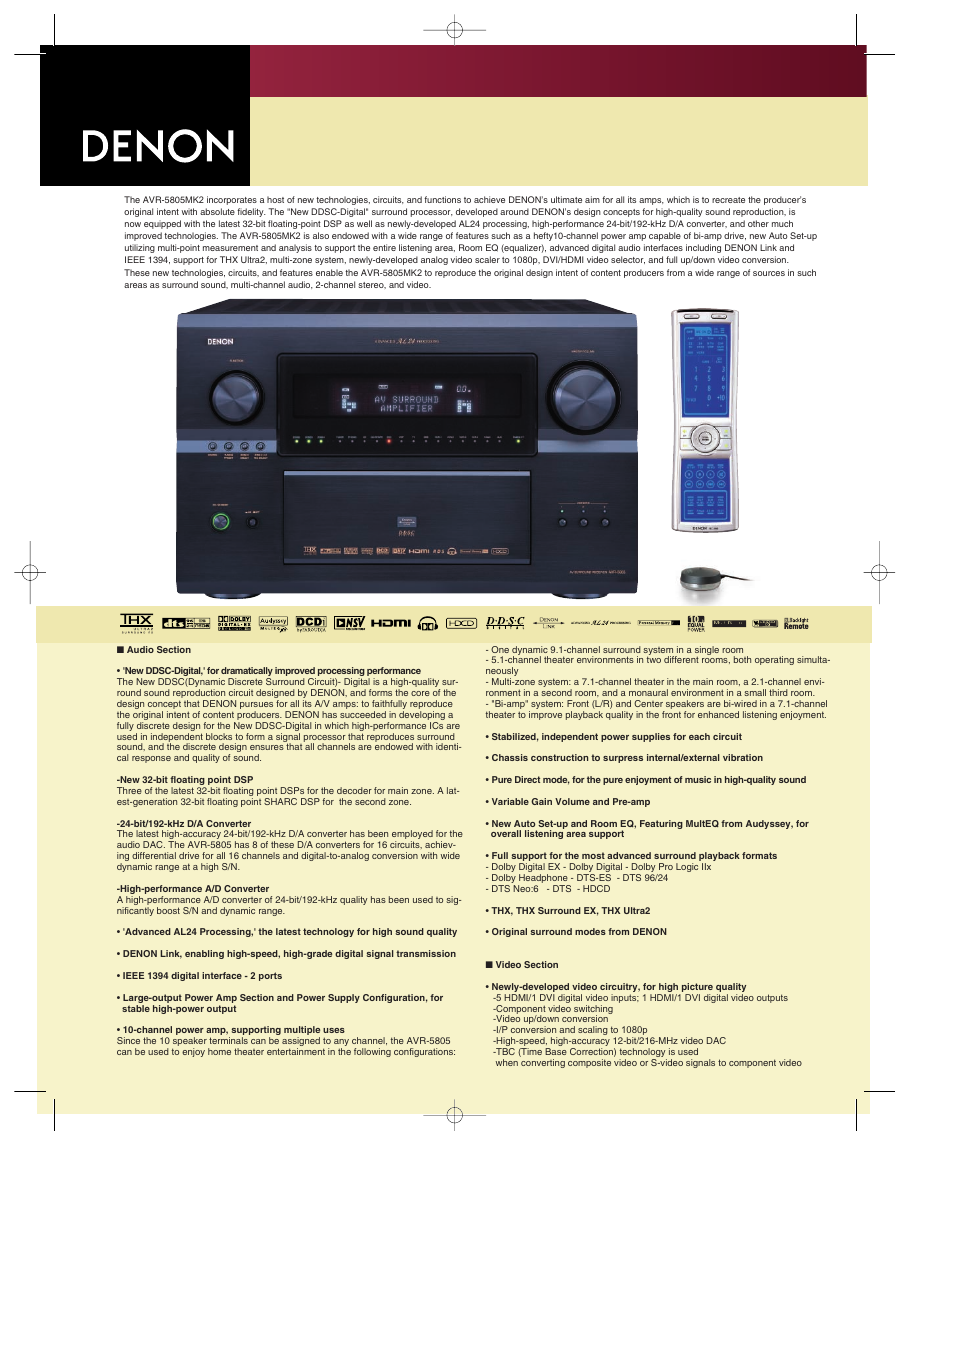 Denon AVR 5805MK2 User Manual | 2 pages